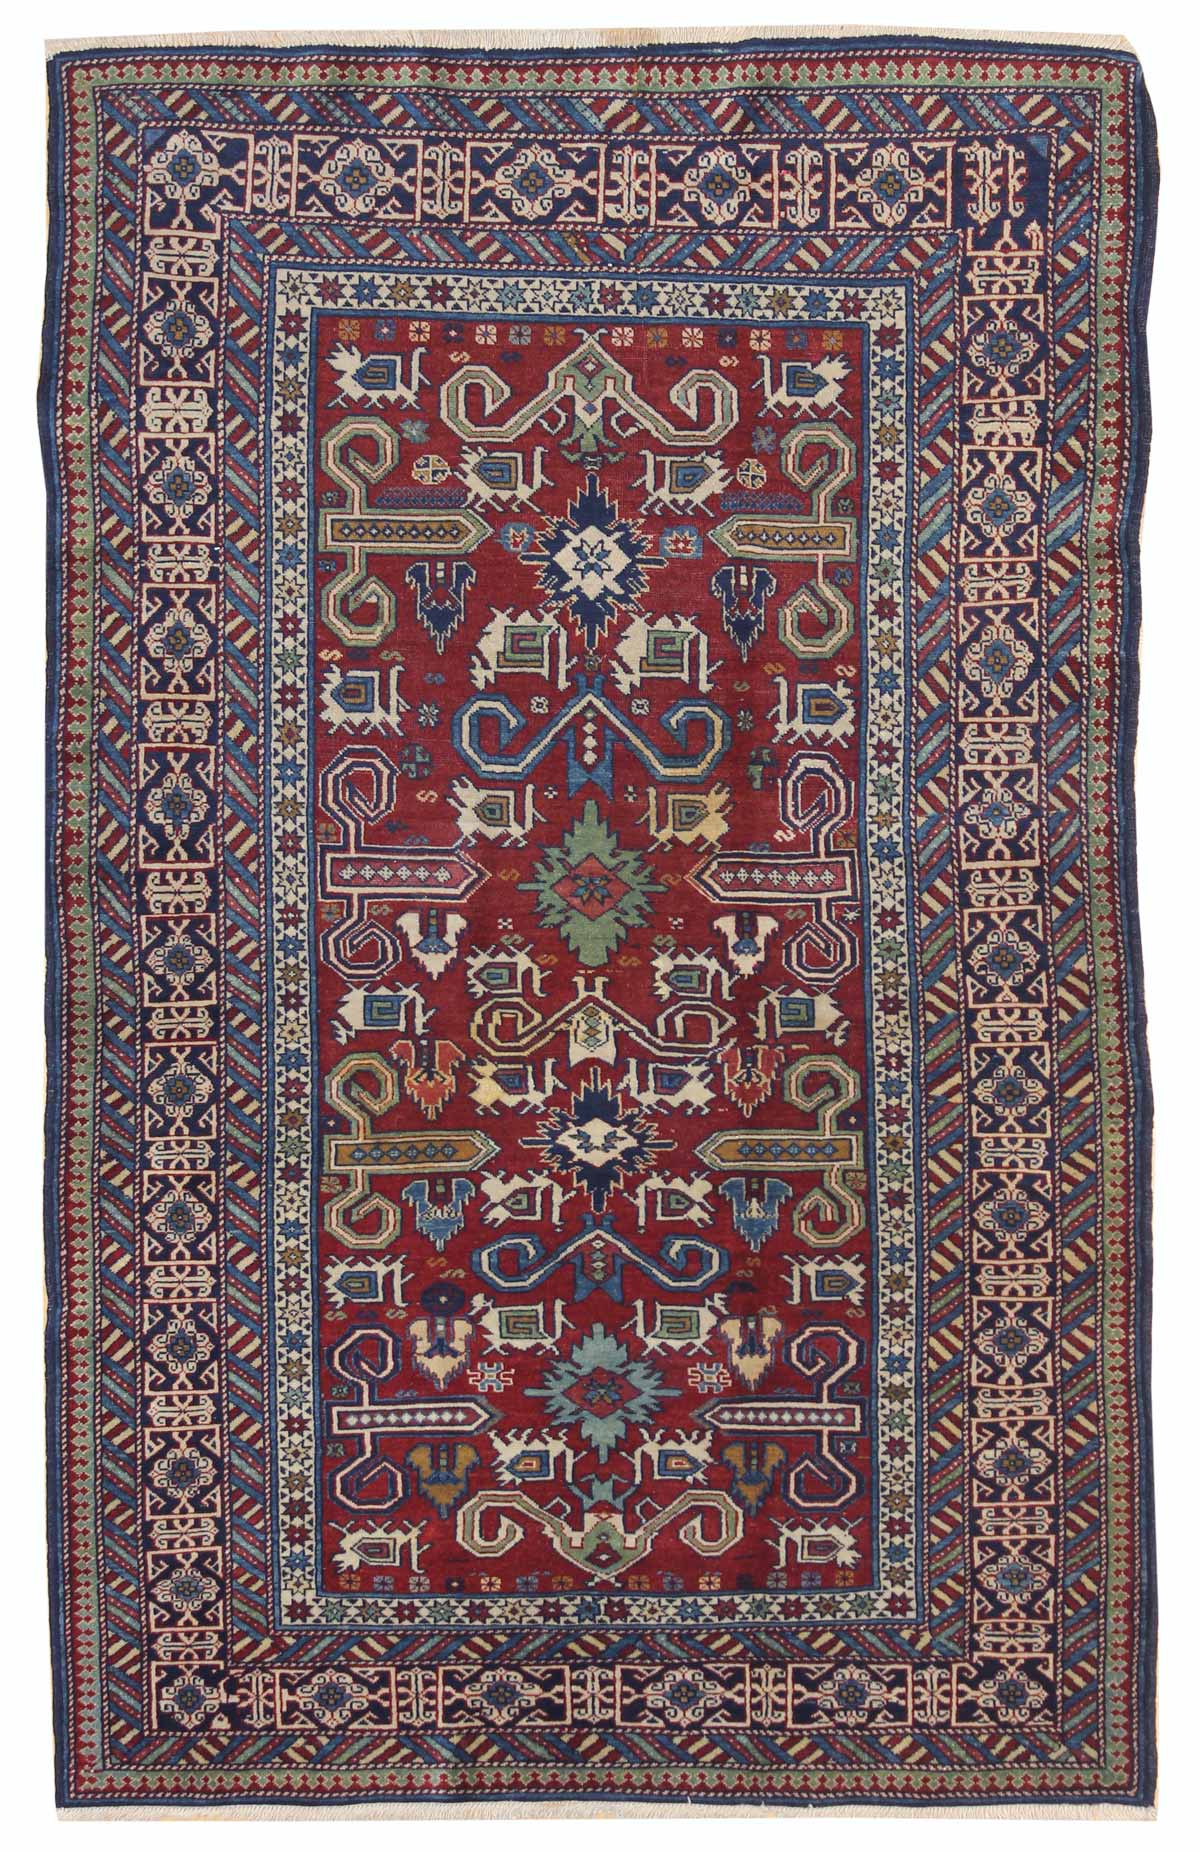 Antique Perpadil Handwoven Tribal Rug